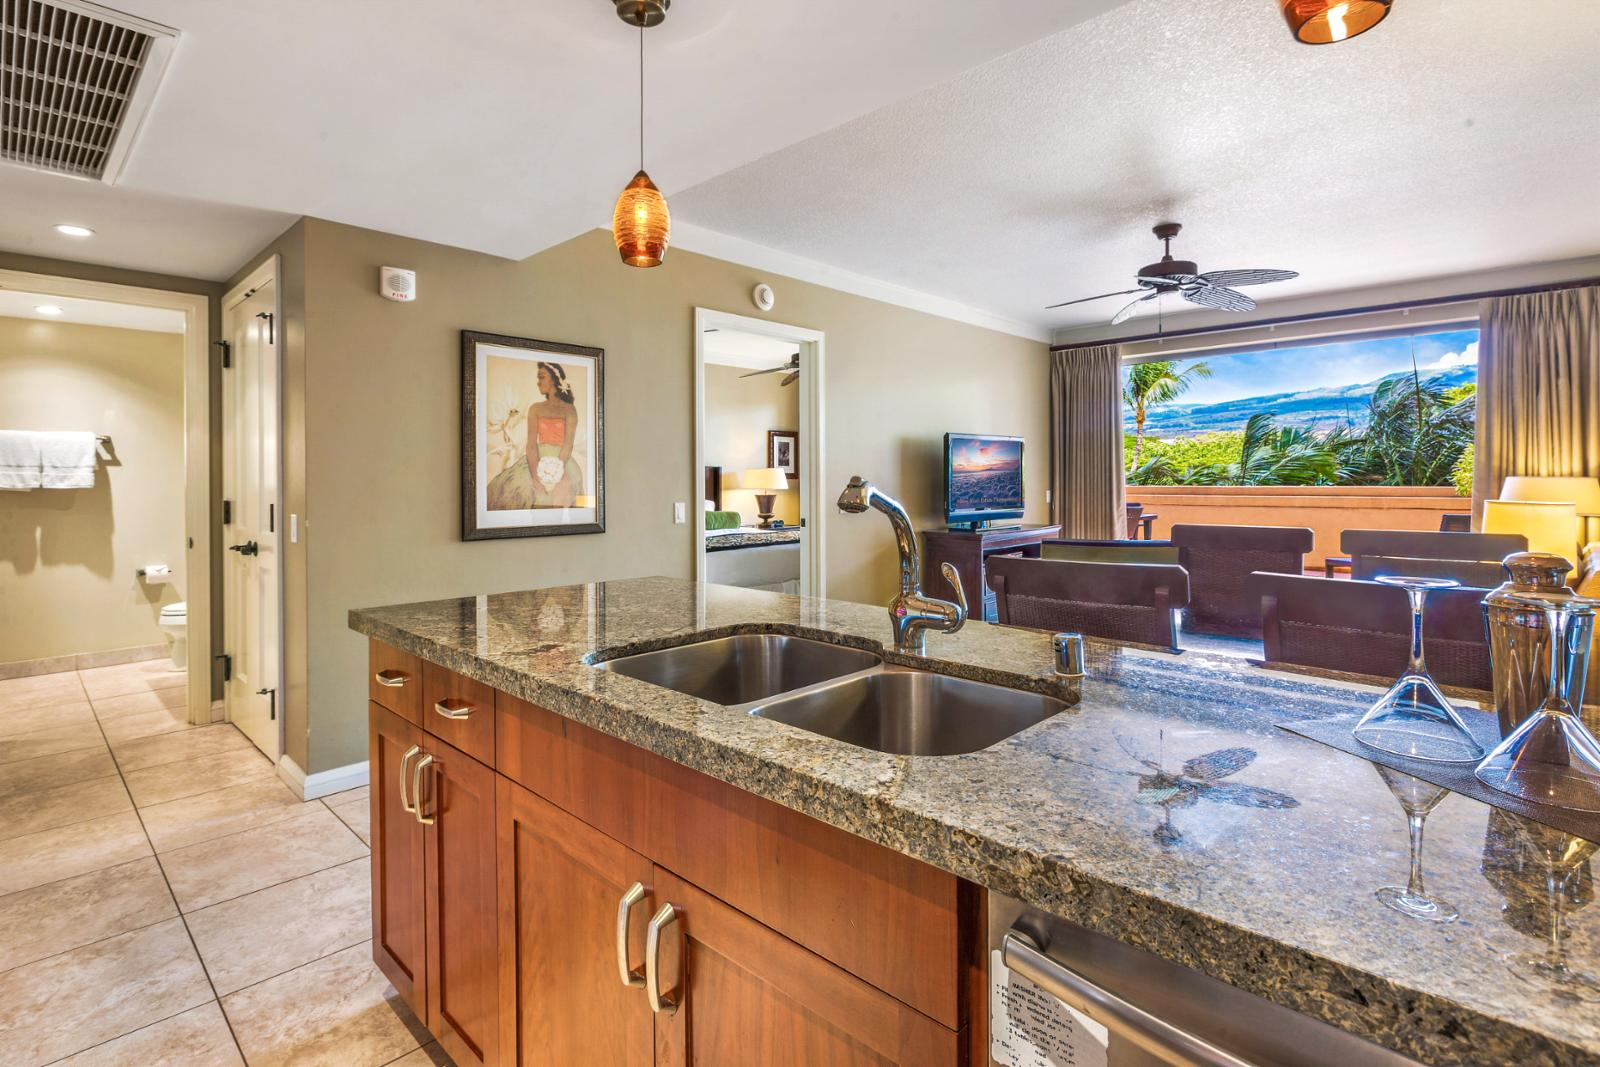 Custom marble countertops complete with West Maui Mountain views